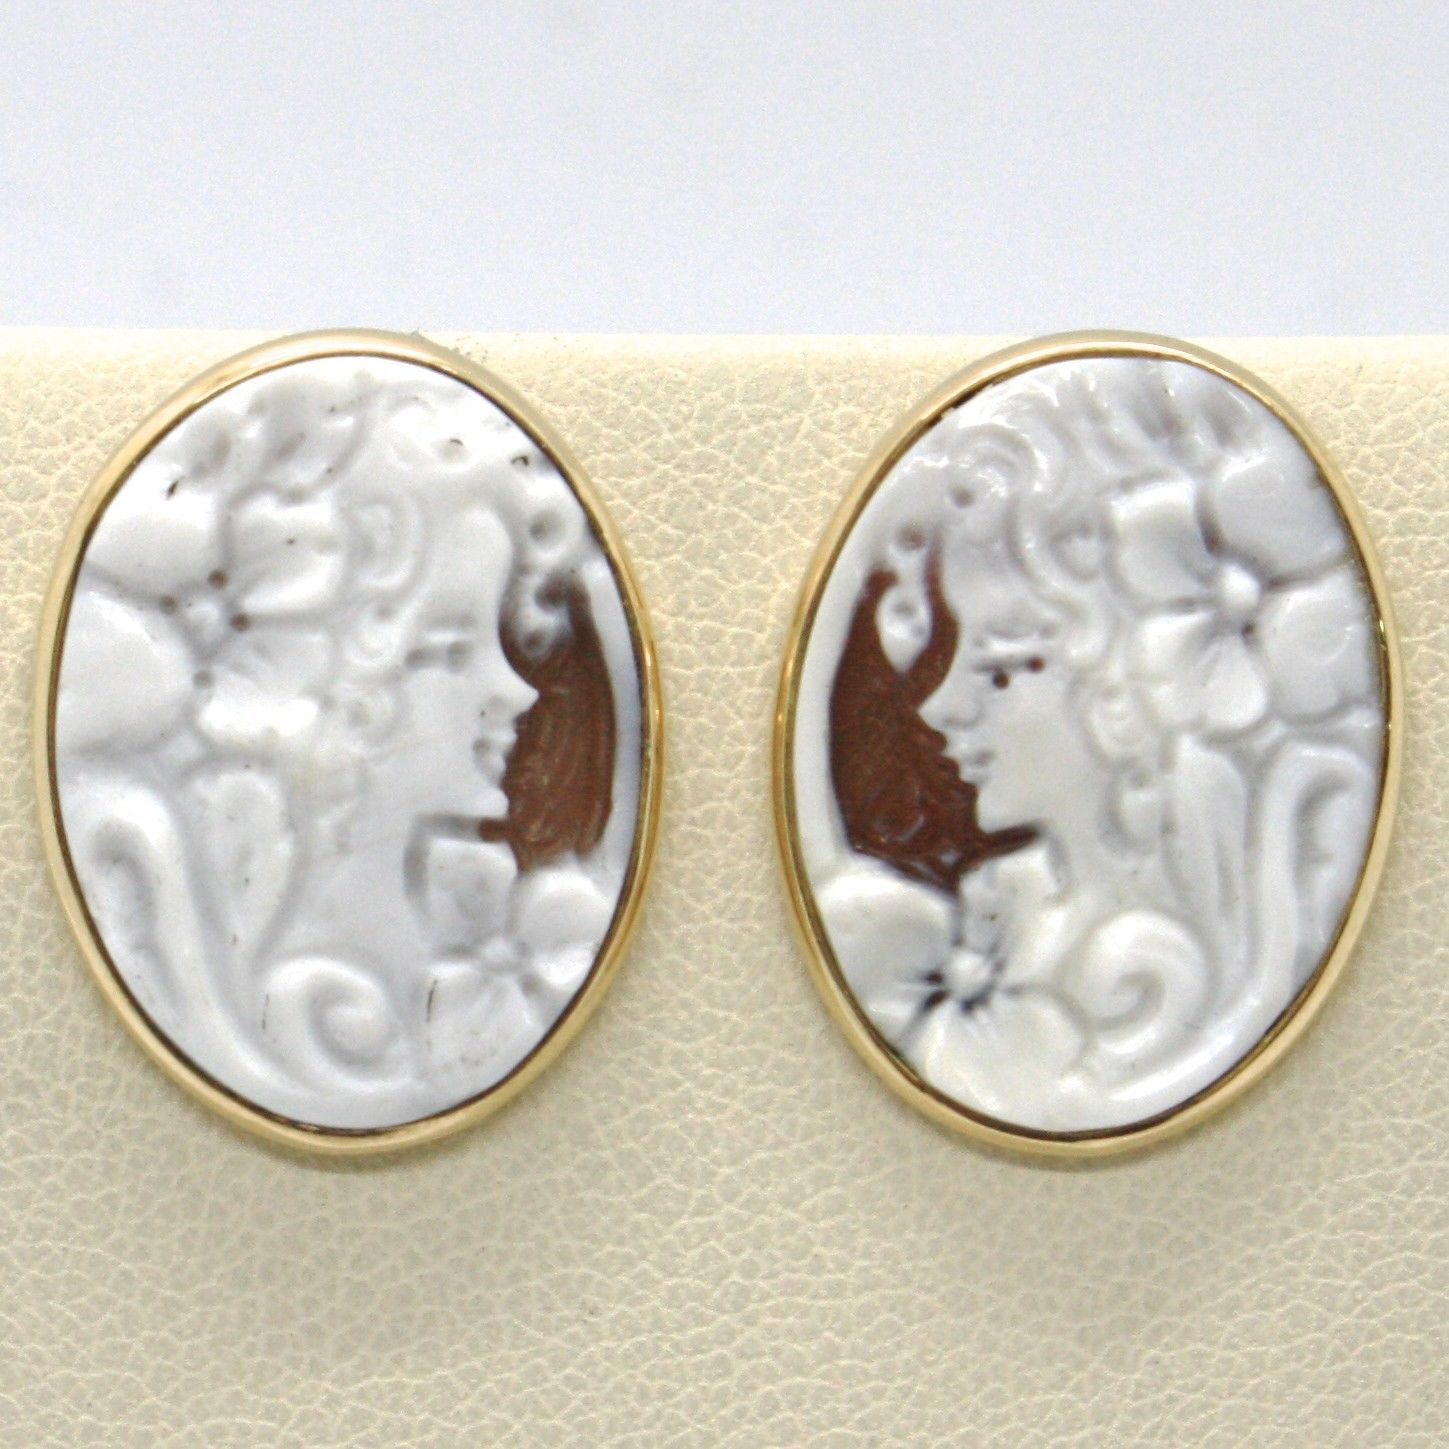 YELLOW GOLD EARRINGS 18K 750 WITH CAMEO CAMEO SHELL OVAL MADE IN ITALY